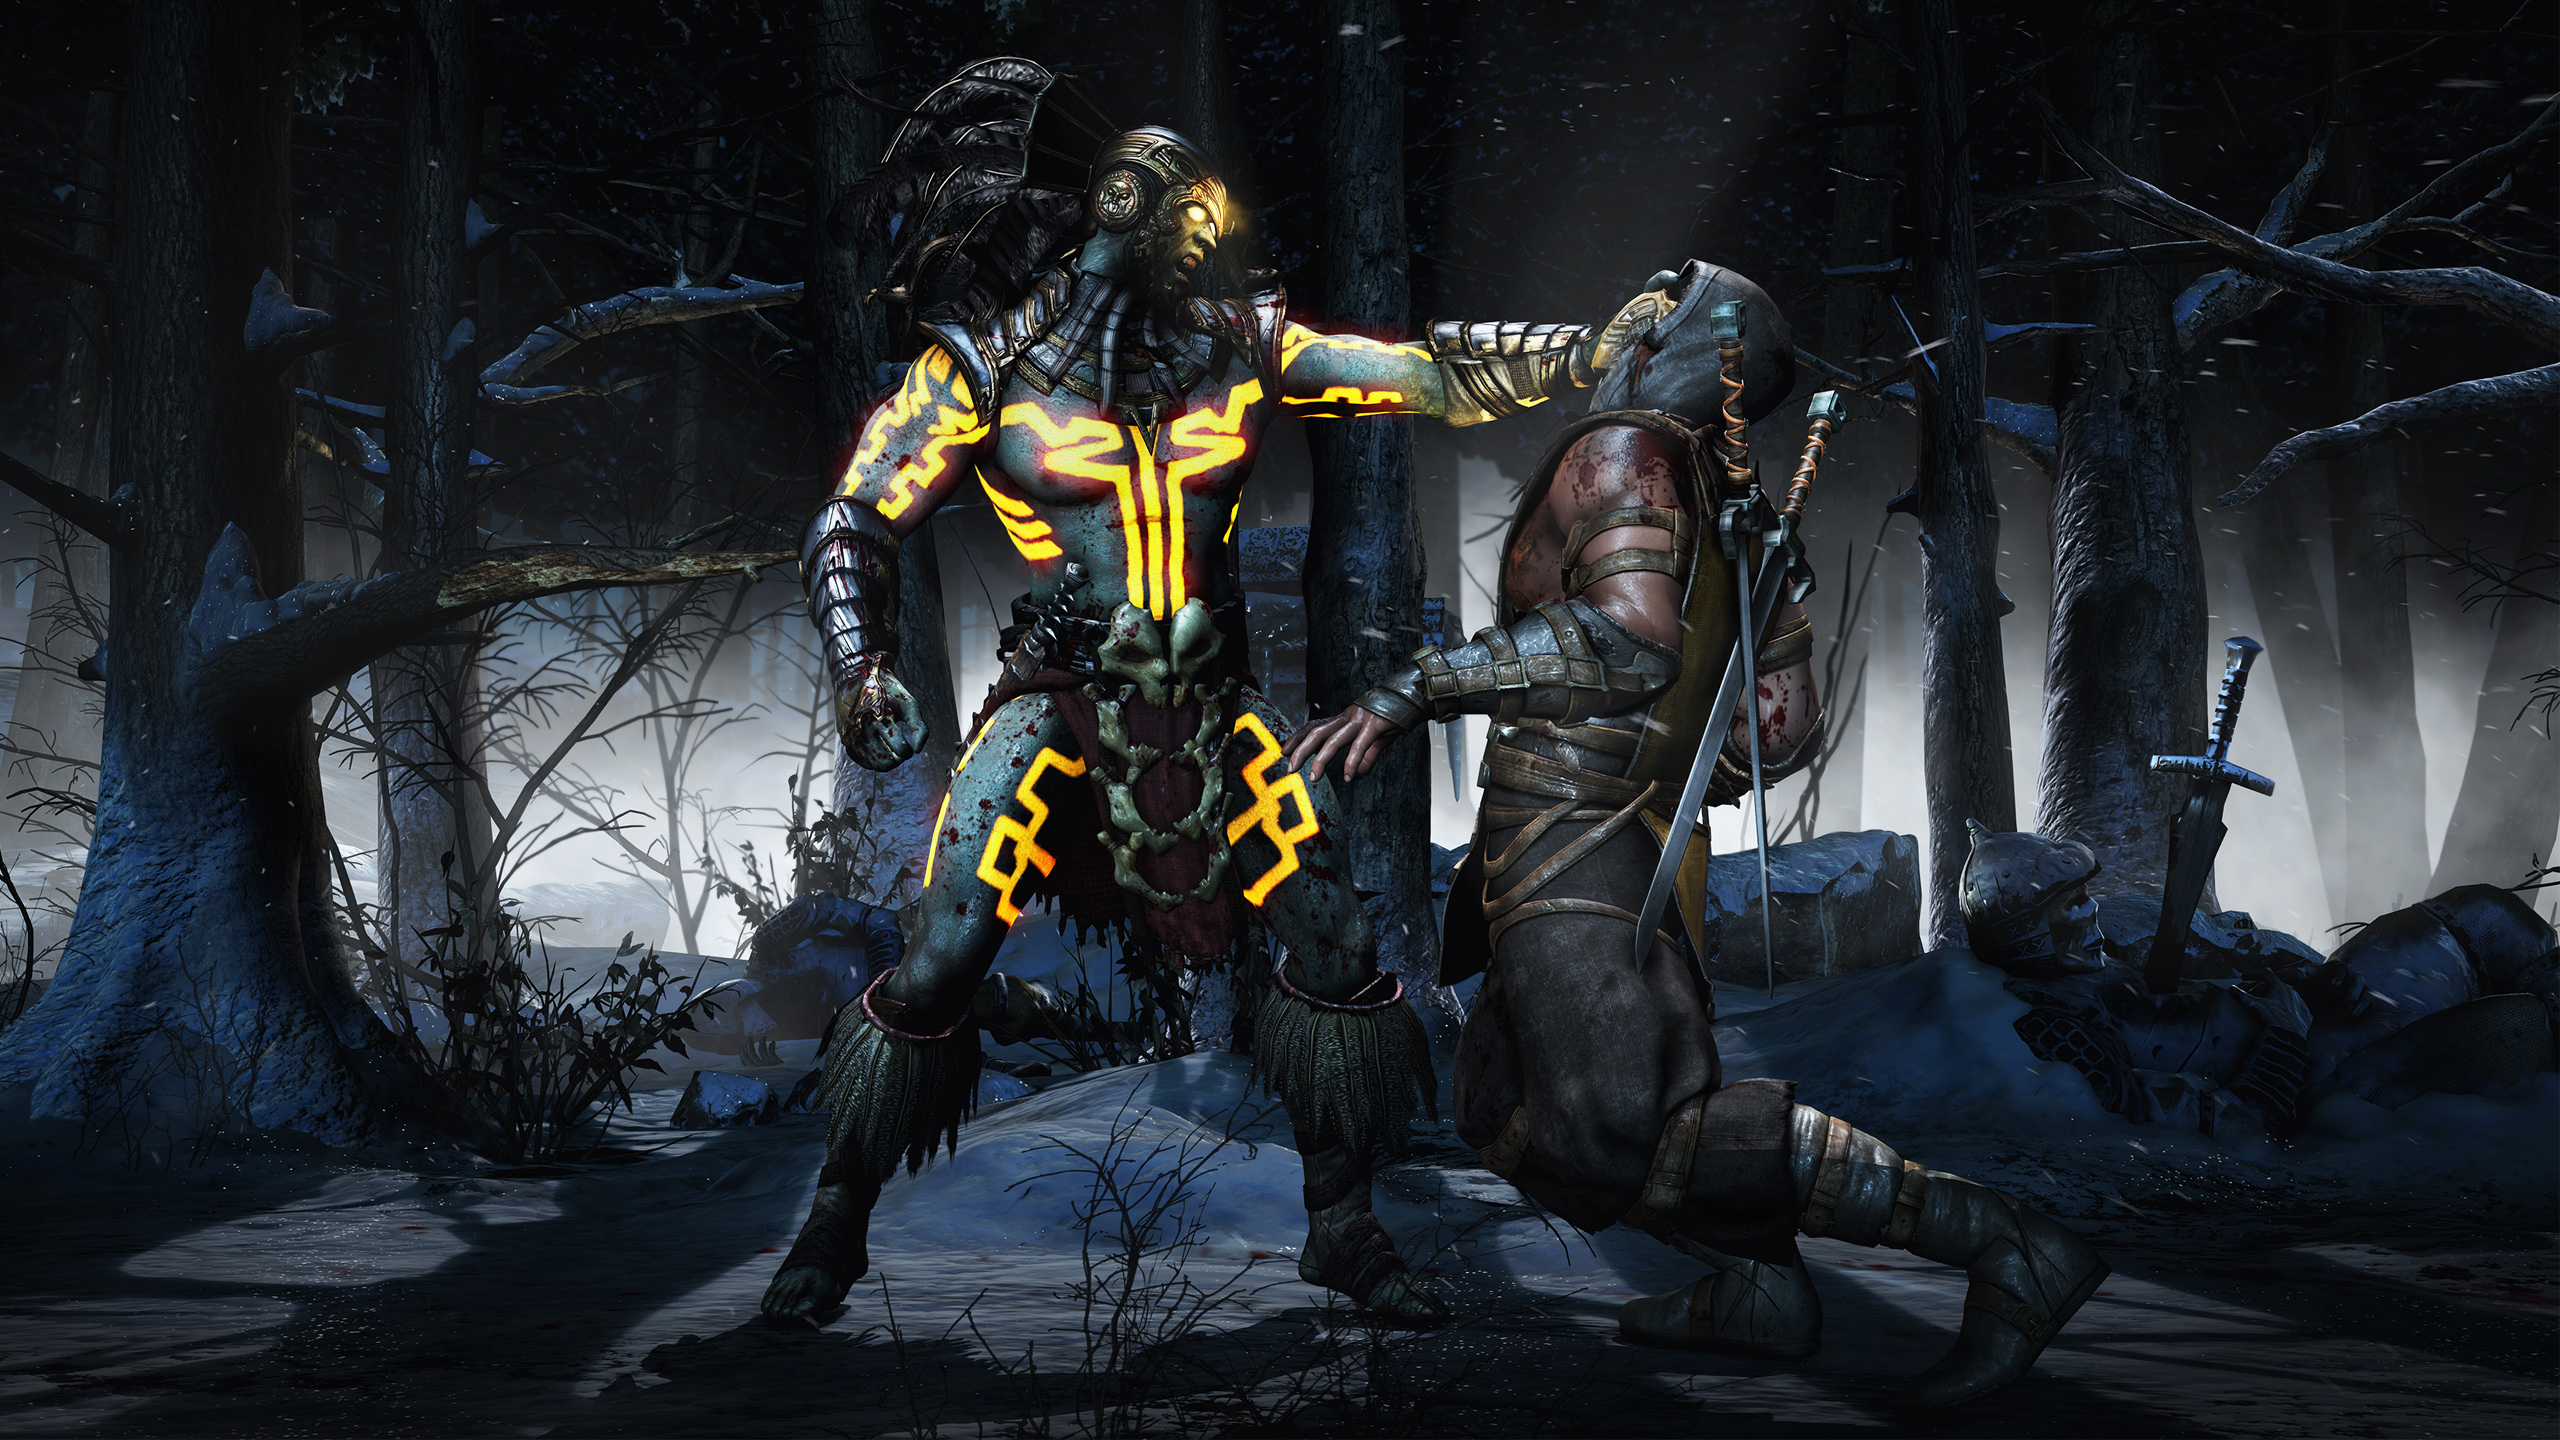 Kotal Scorpion Mortal Kombat X Hd Wallpaper